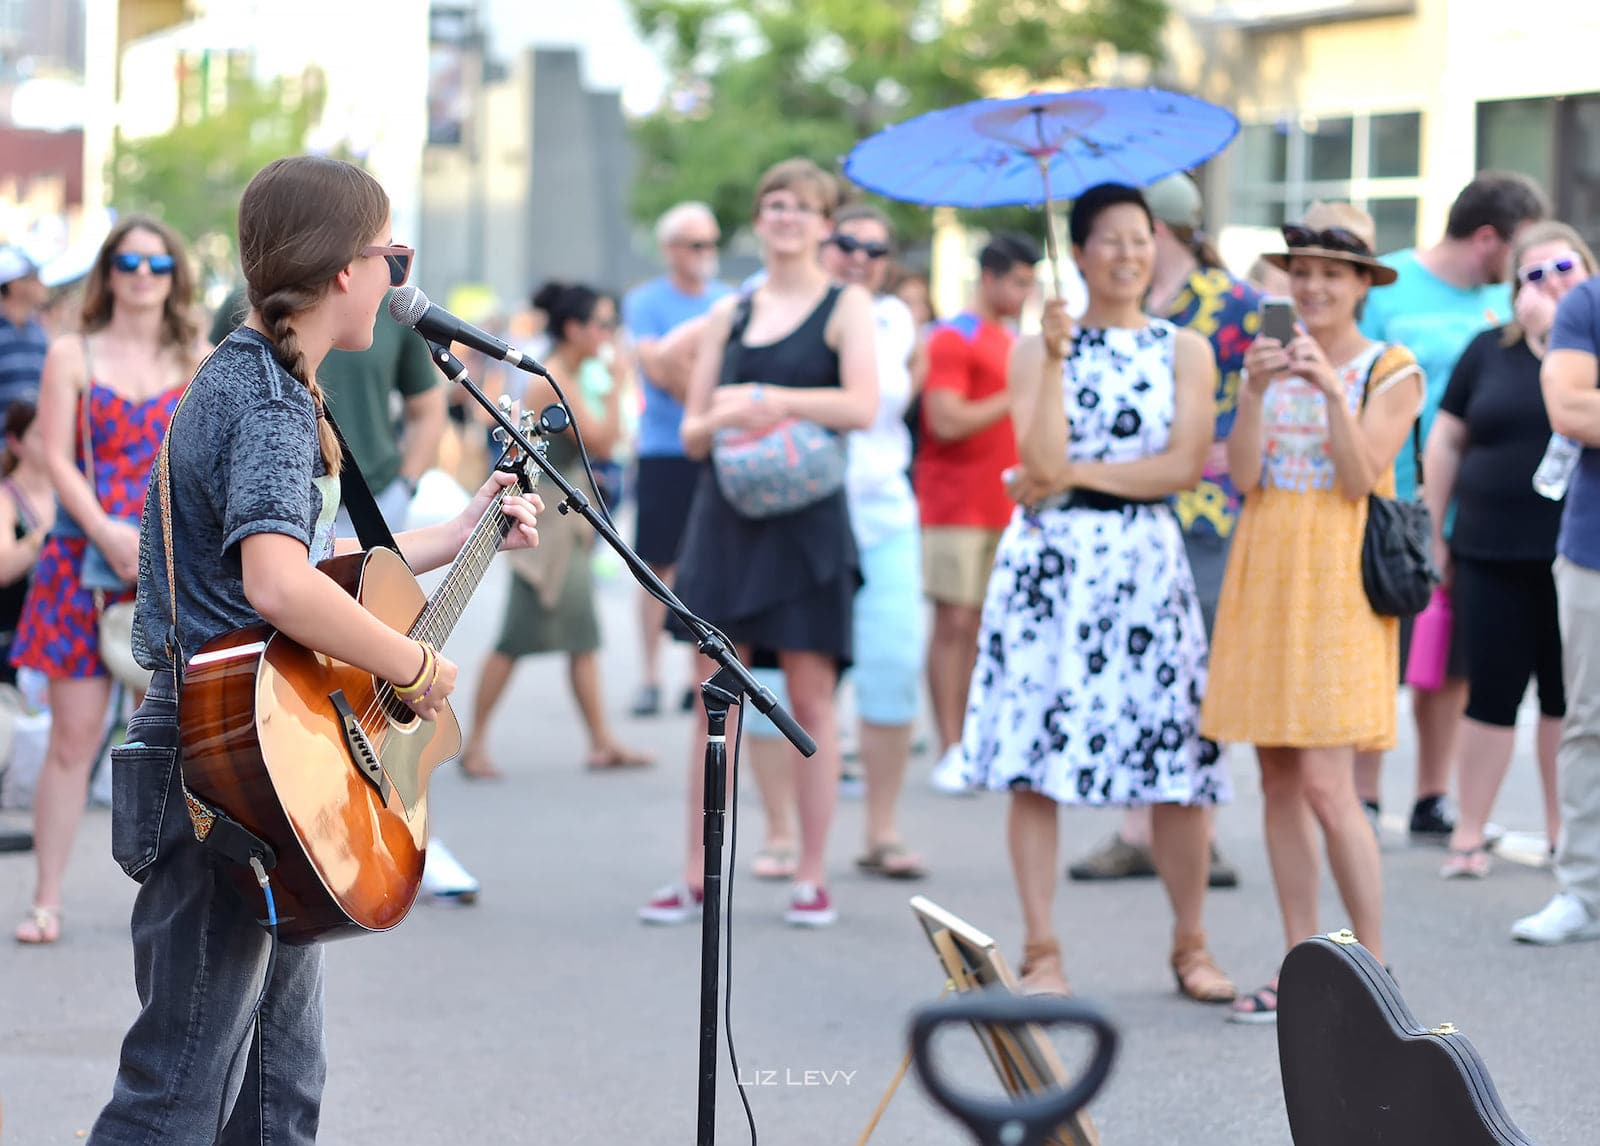 Image of people watching a musician at the Art District on Santa Fe in Denver, Colorado